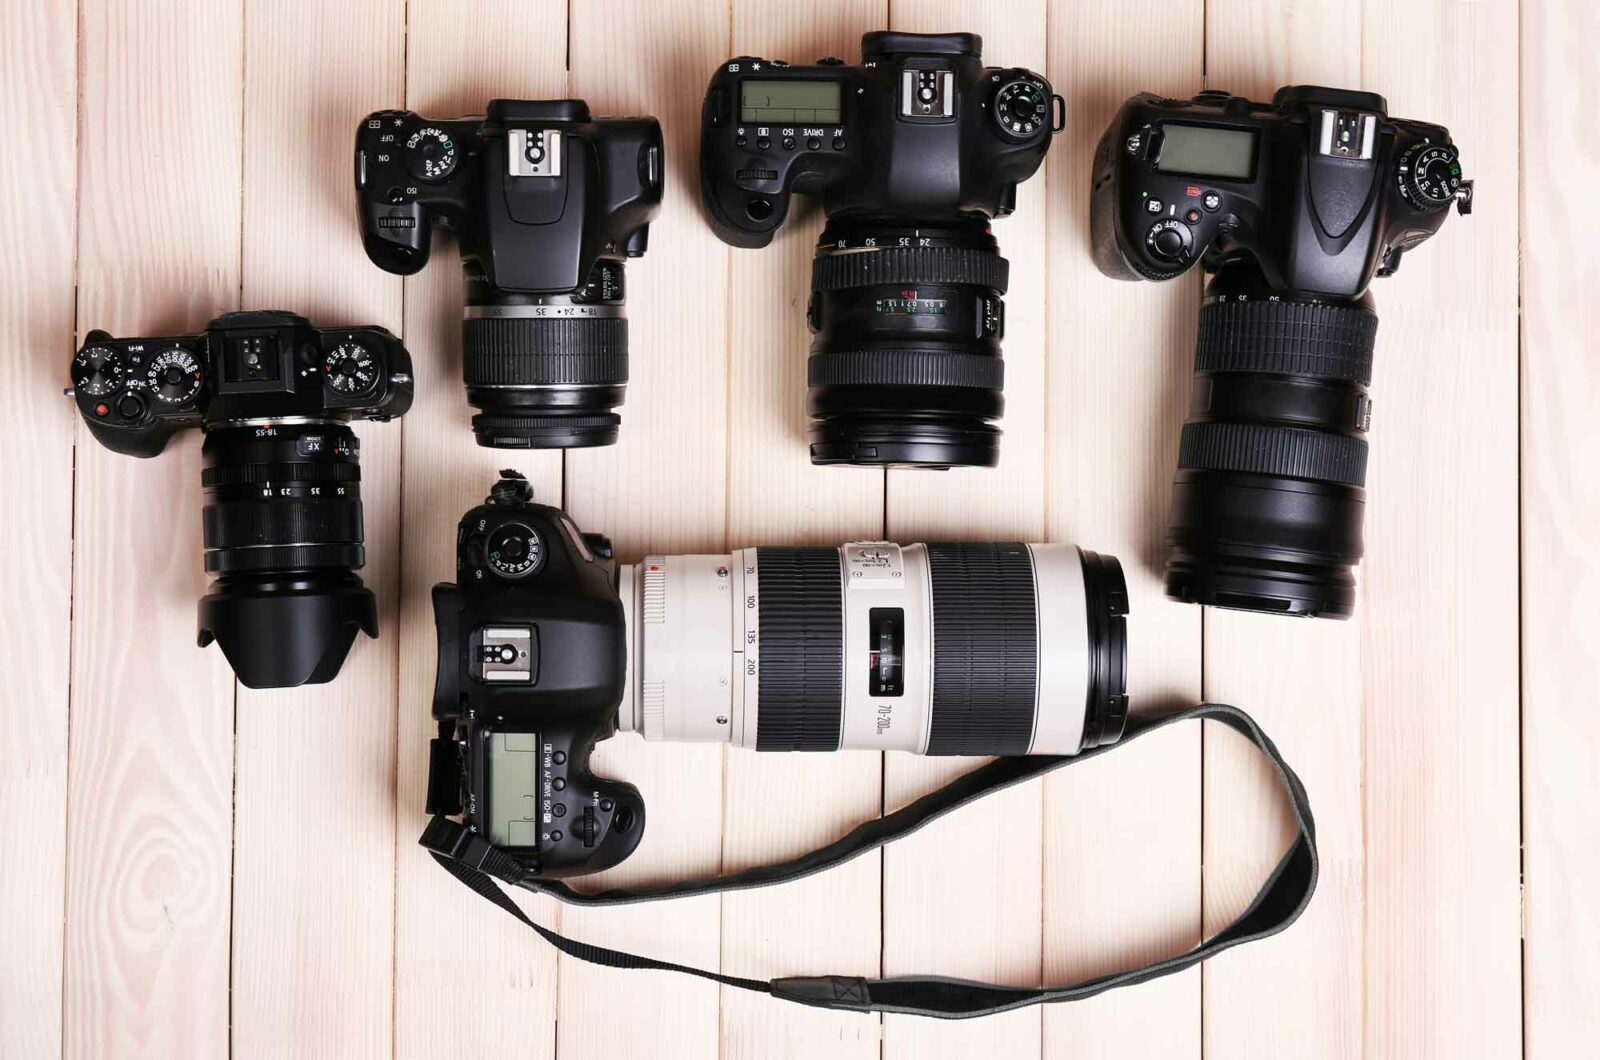 How much can you save by buying cameras online?